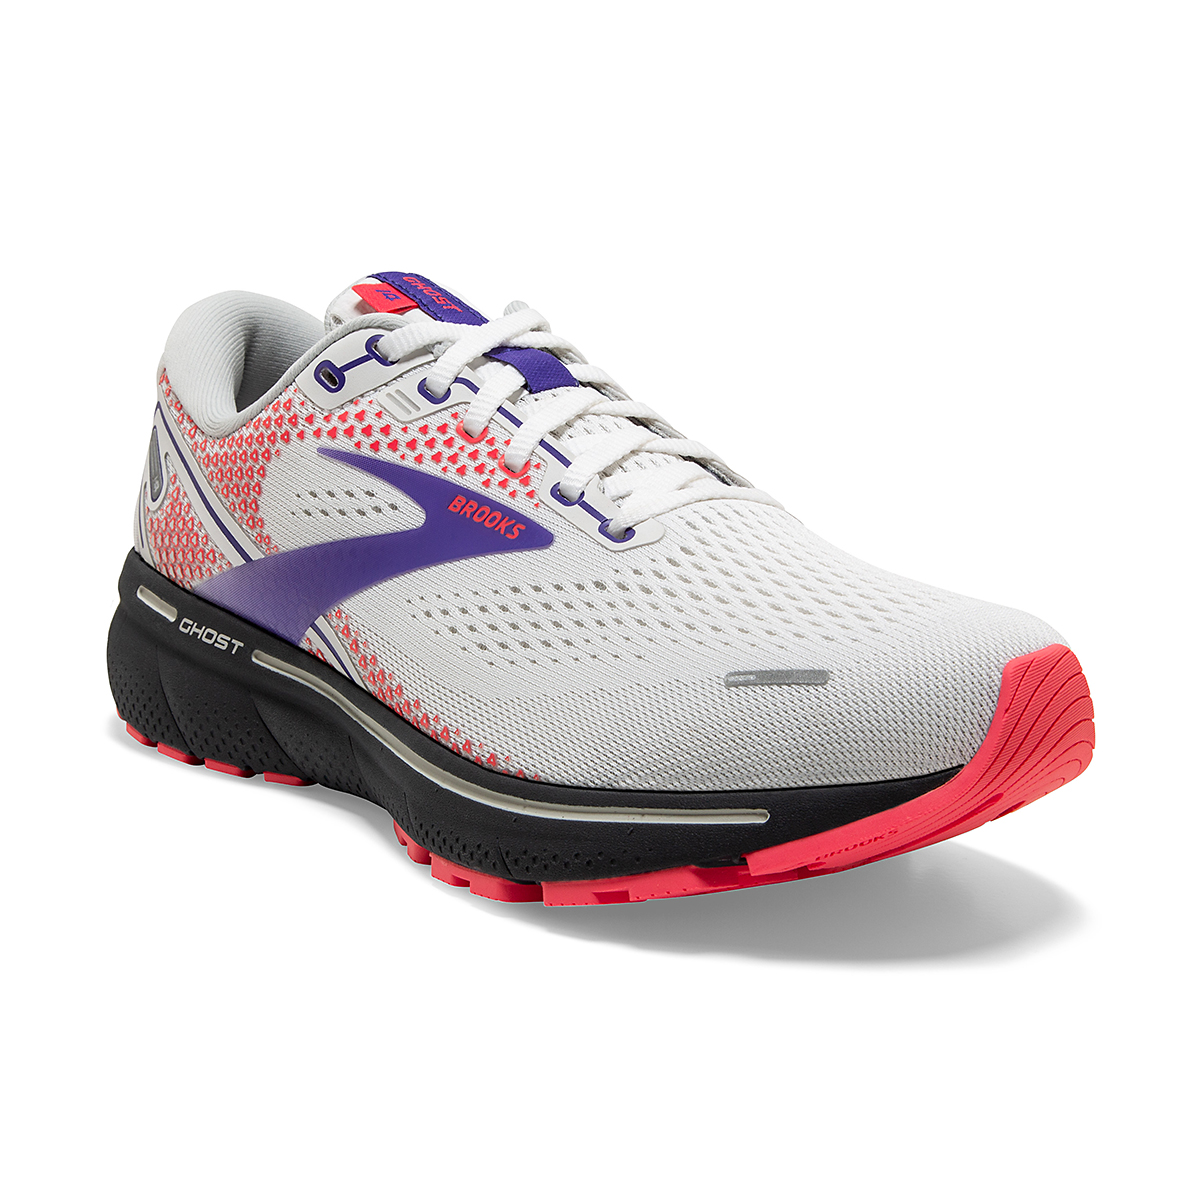 Women's Brooks Ghost 14 Running Shoe - Color: White/Purple/Coral - Size: 5 - Width: Regular, White/Purple/Coral, large, image 5